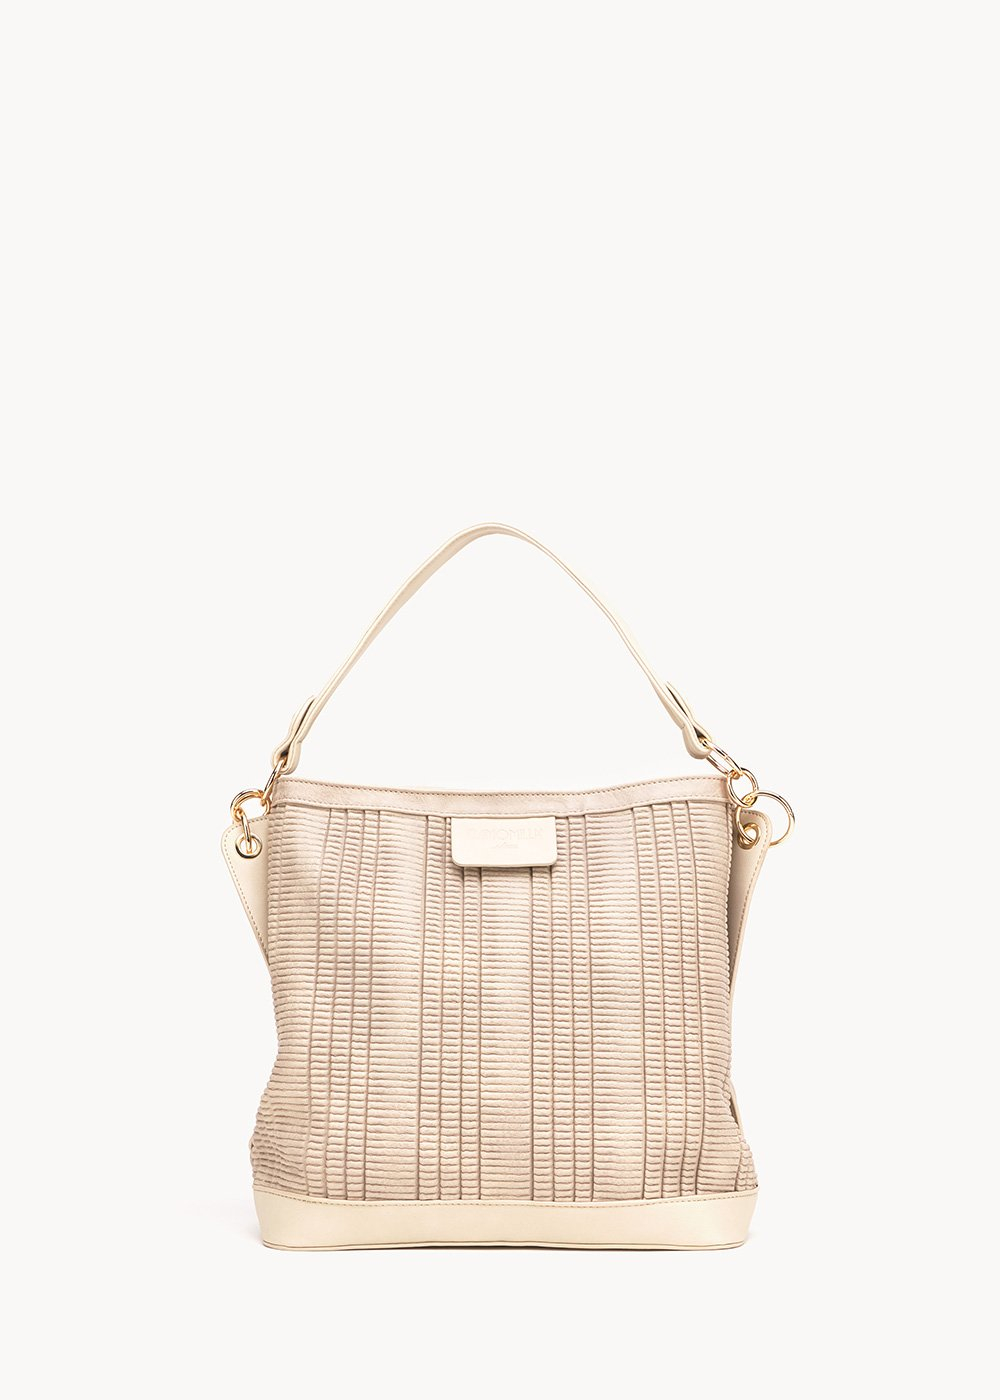 Hobo bag Beky con tracolla - Light Beige - Donna